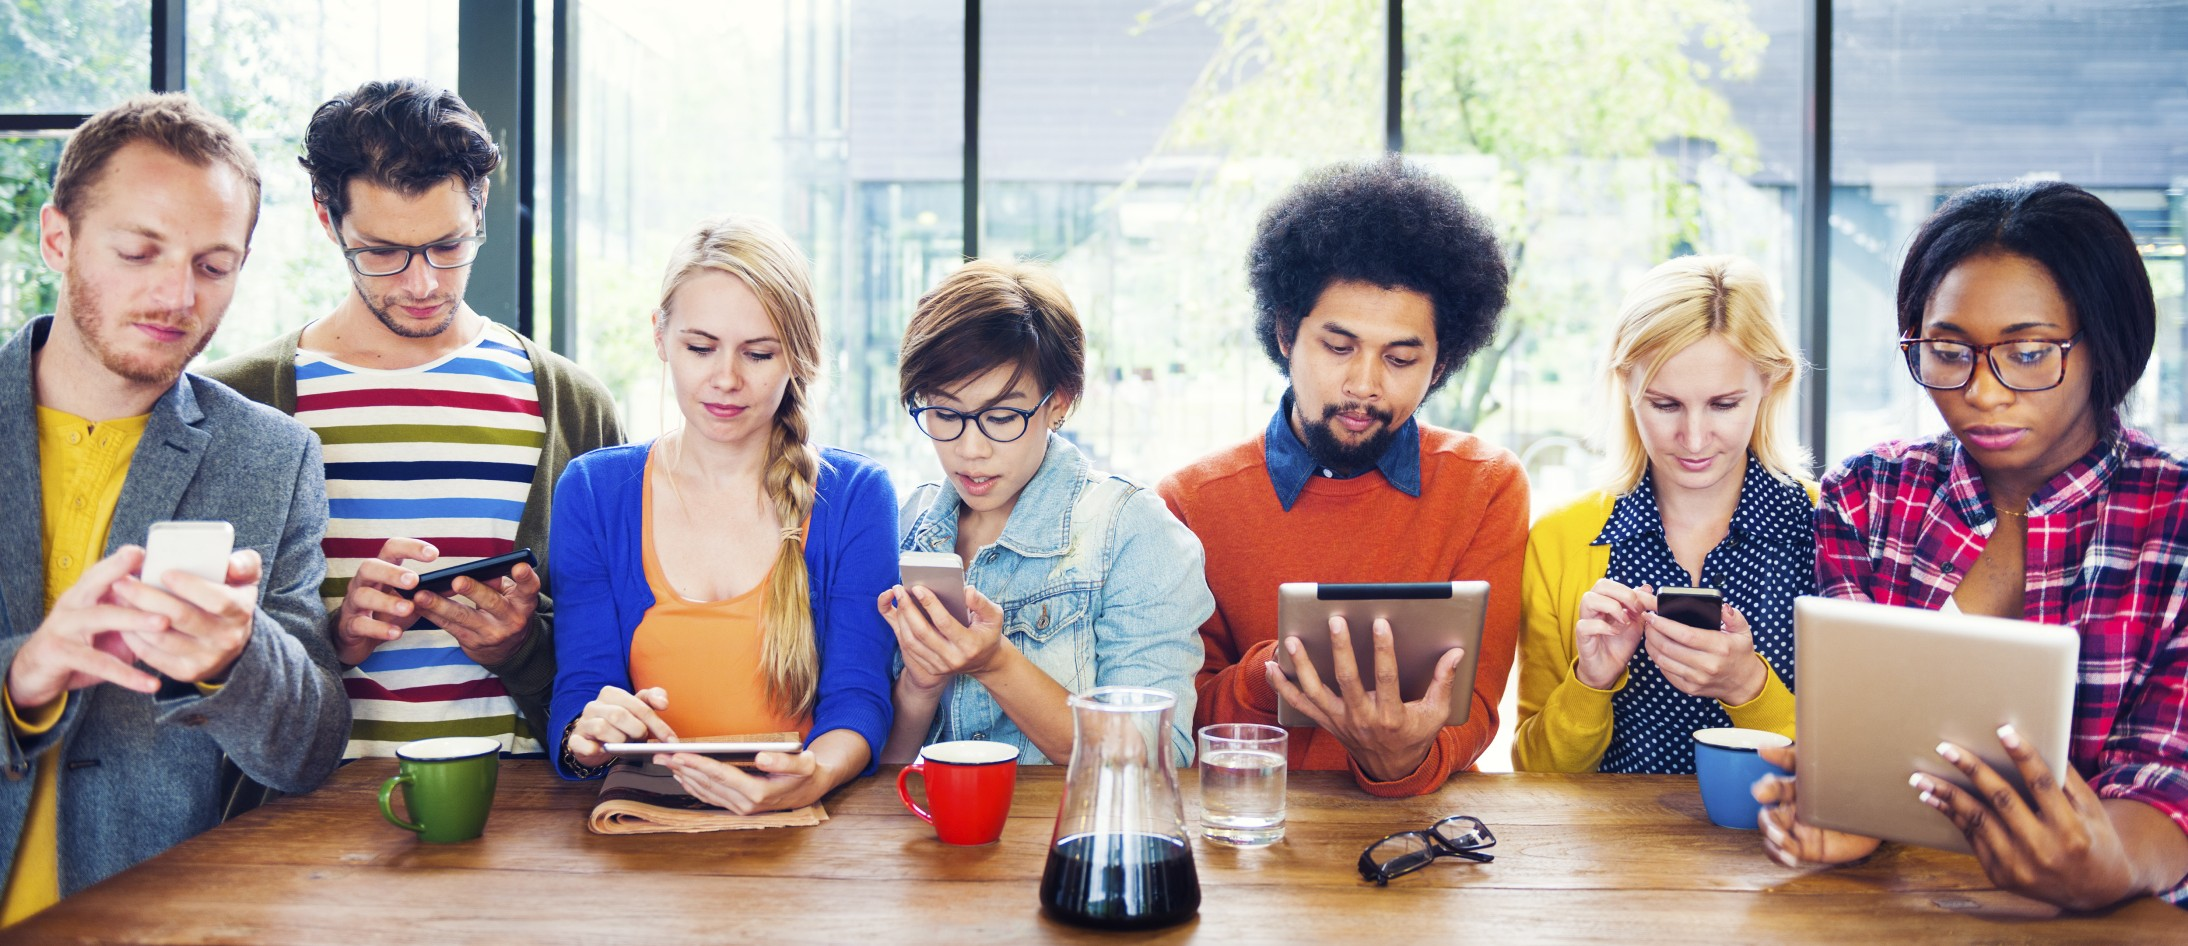 Photo of group of millennials sat at a table all using devices